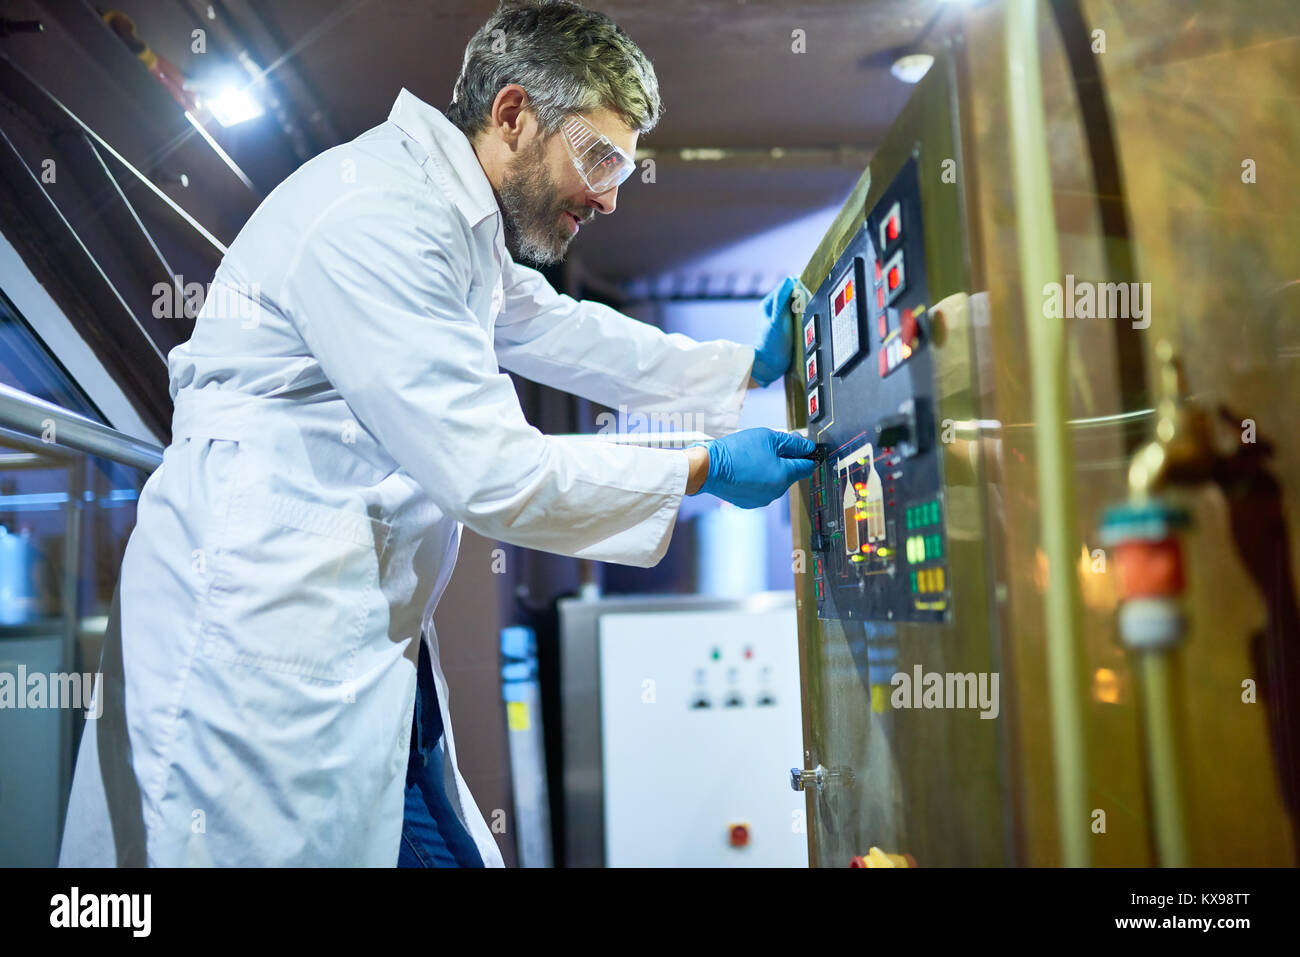 Machine Operator Working at Modern Brewery - Stock Image